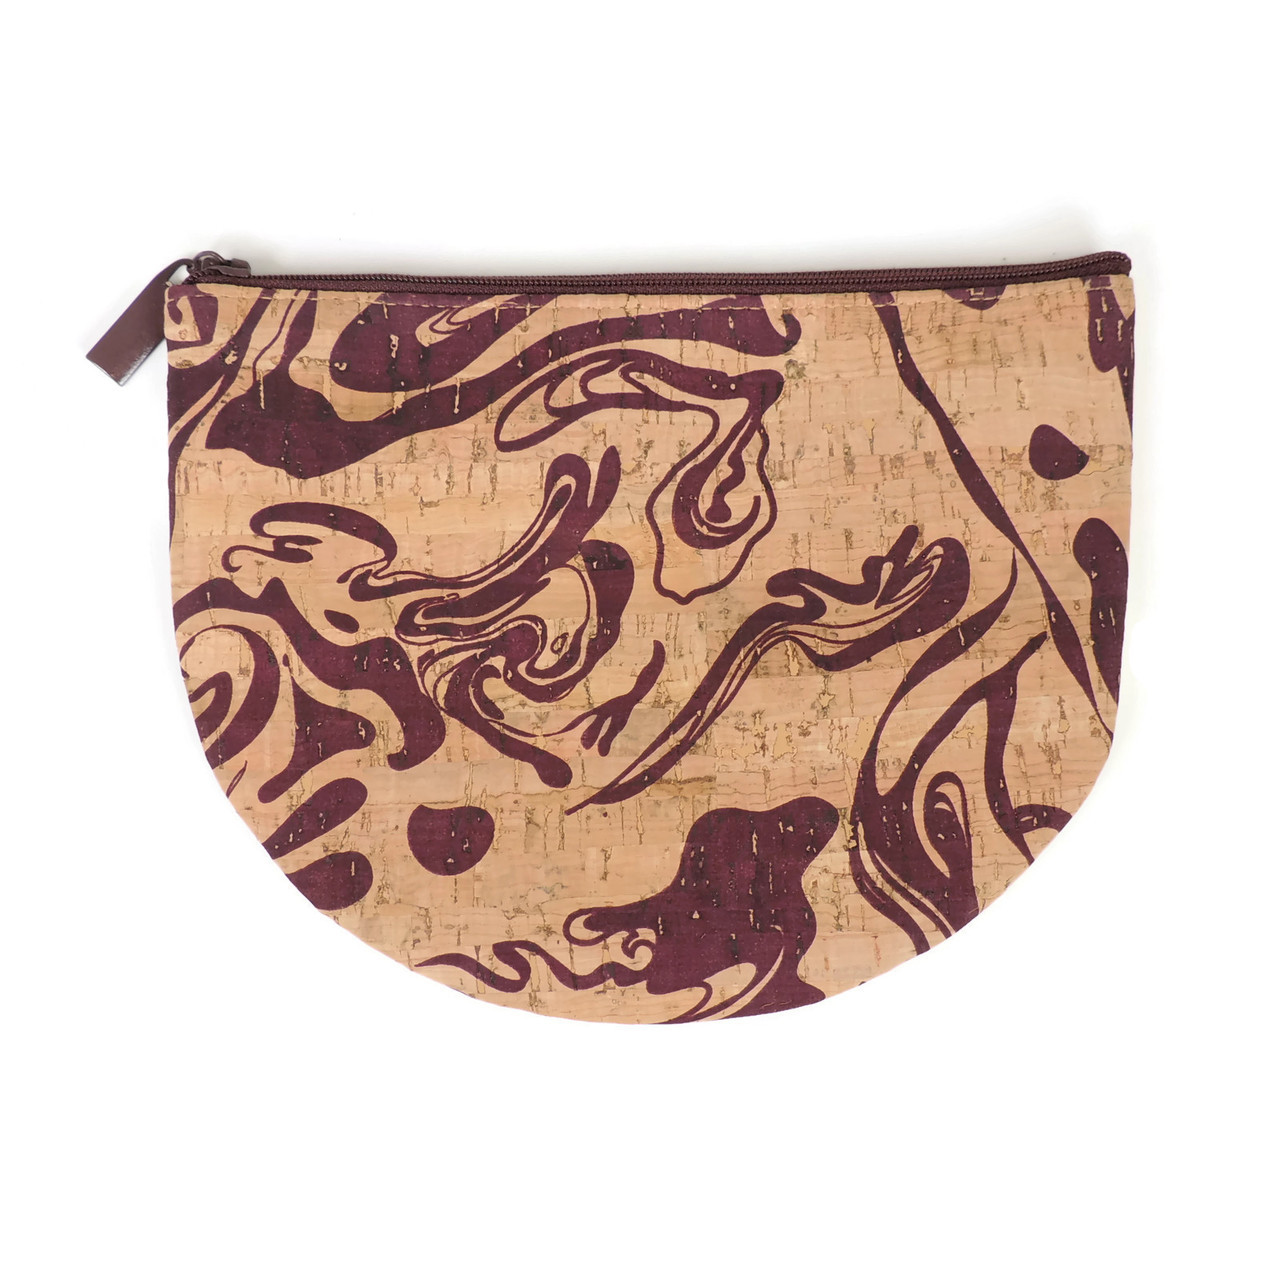 Half Moon Pouch in Maroon Ink Cork